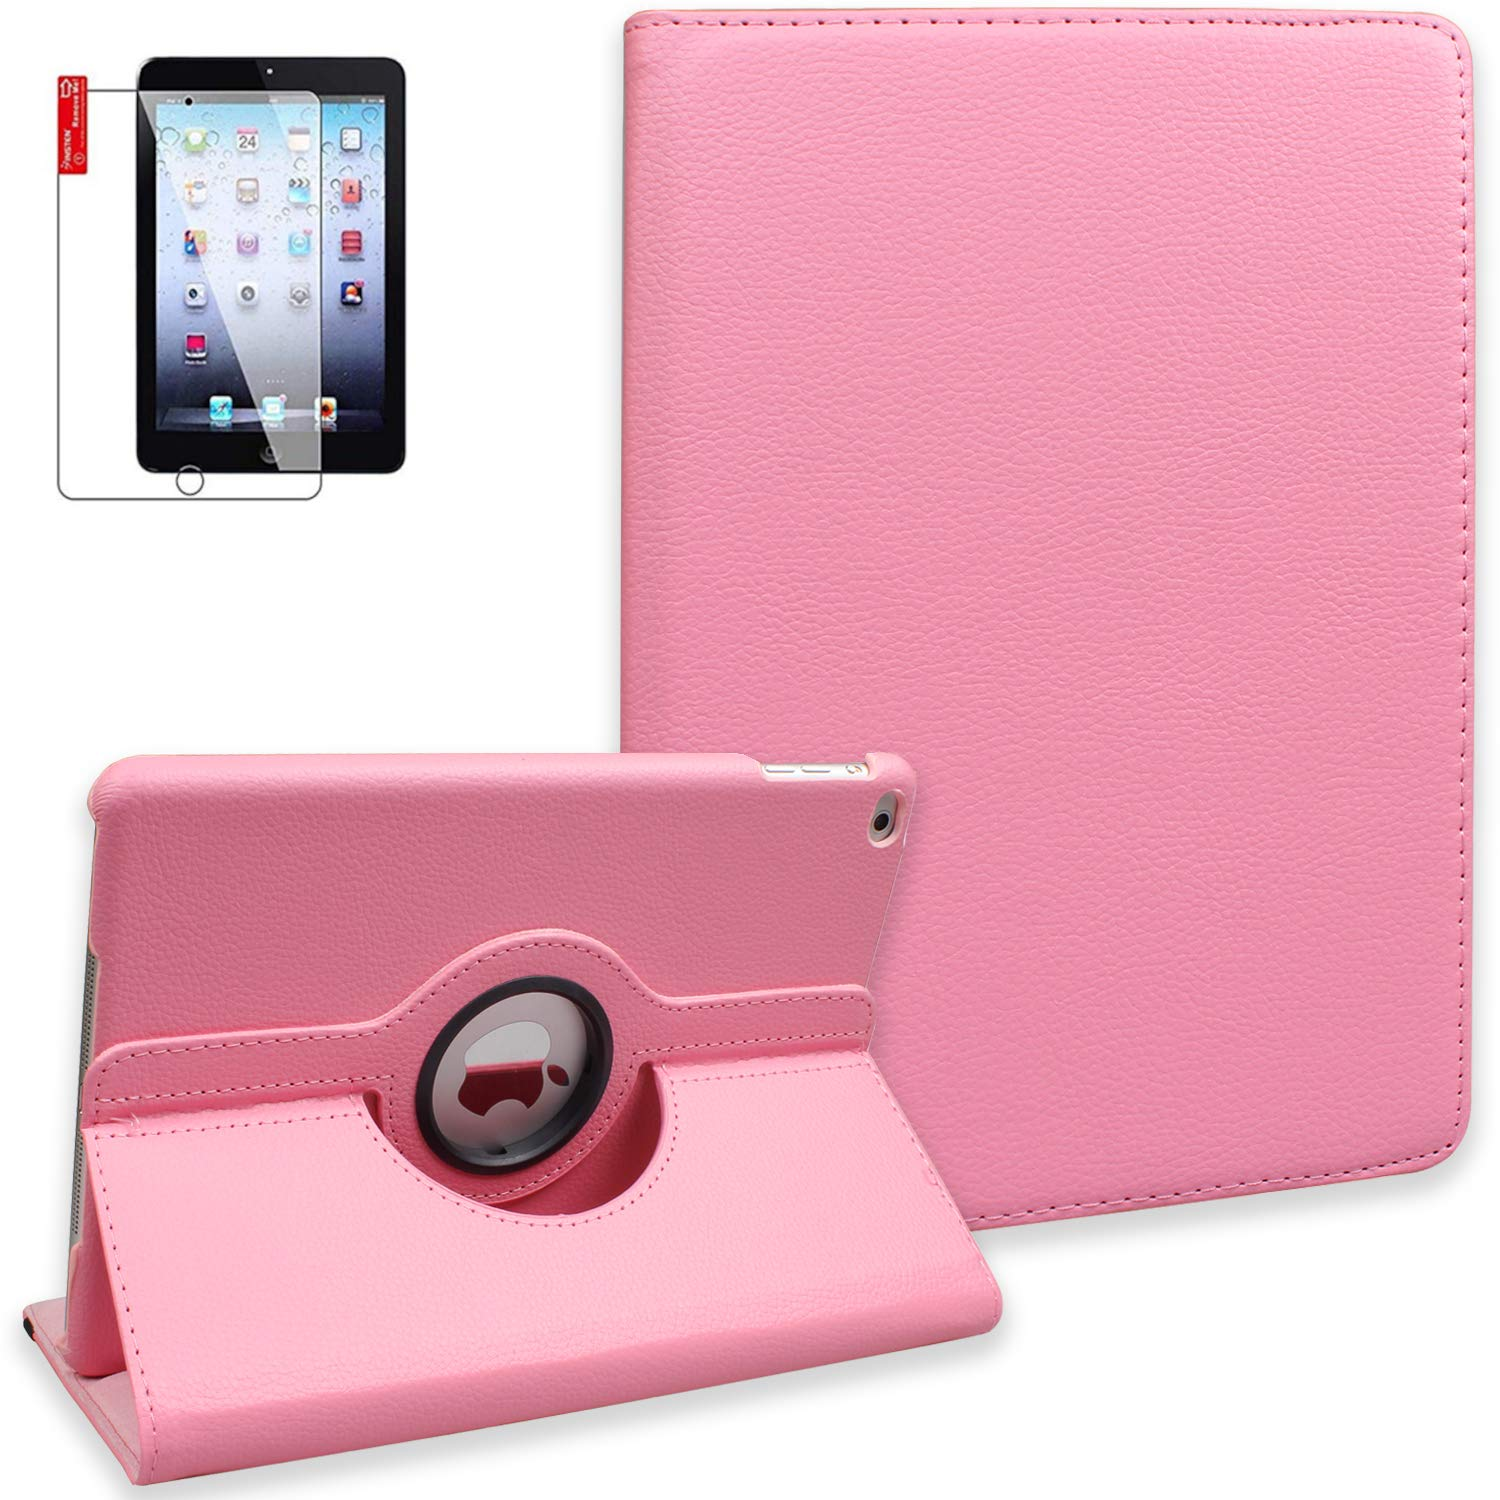 iPad 6th Generation Cases Cover with Screen Protector and Stylus - iPad 9.7 inch 2018 2017 Air1 Case - 360 Degree Rotating Stand, Auto Sleep Wake, Shockproof - A1822 A1823 A1474 A1475 MR7F2LL/A (Pink)